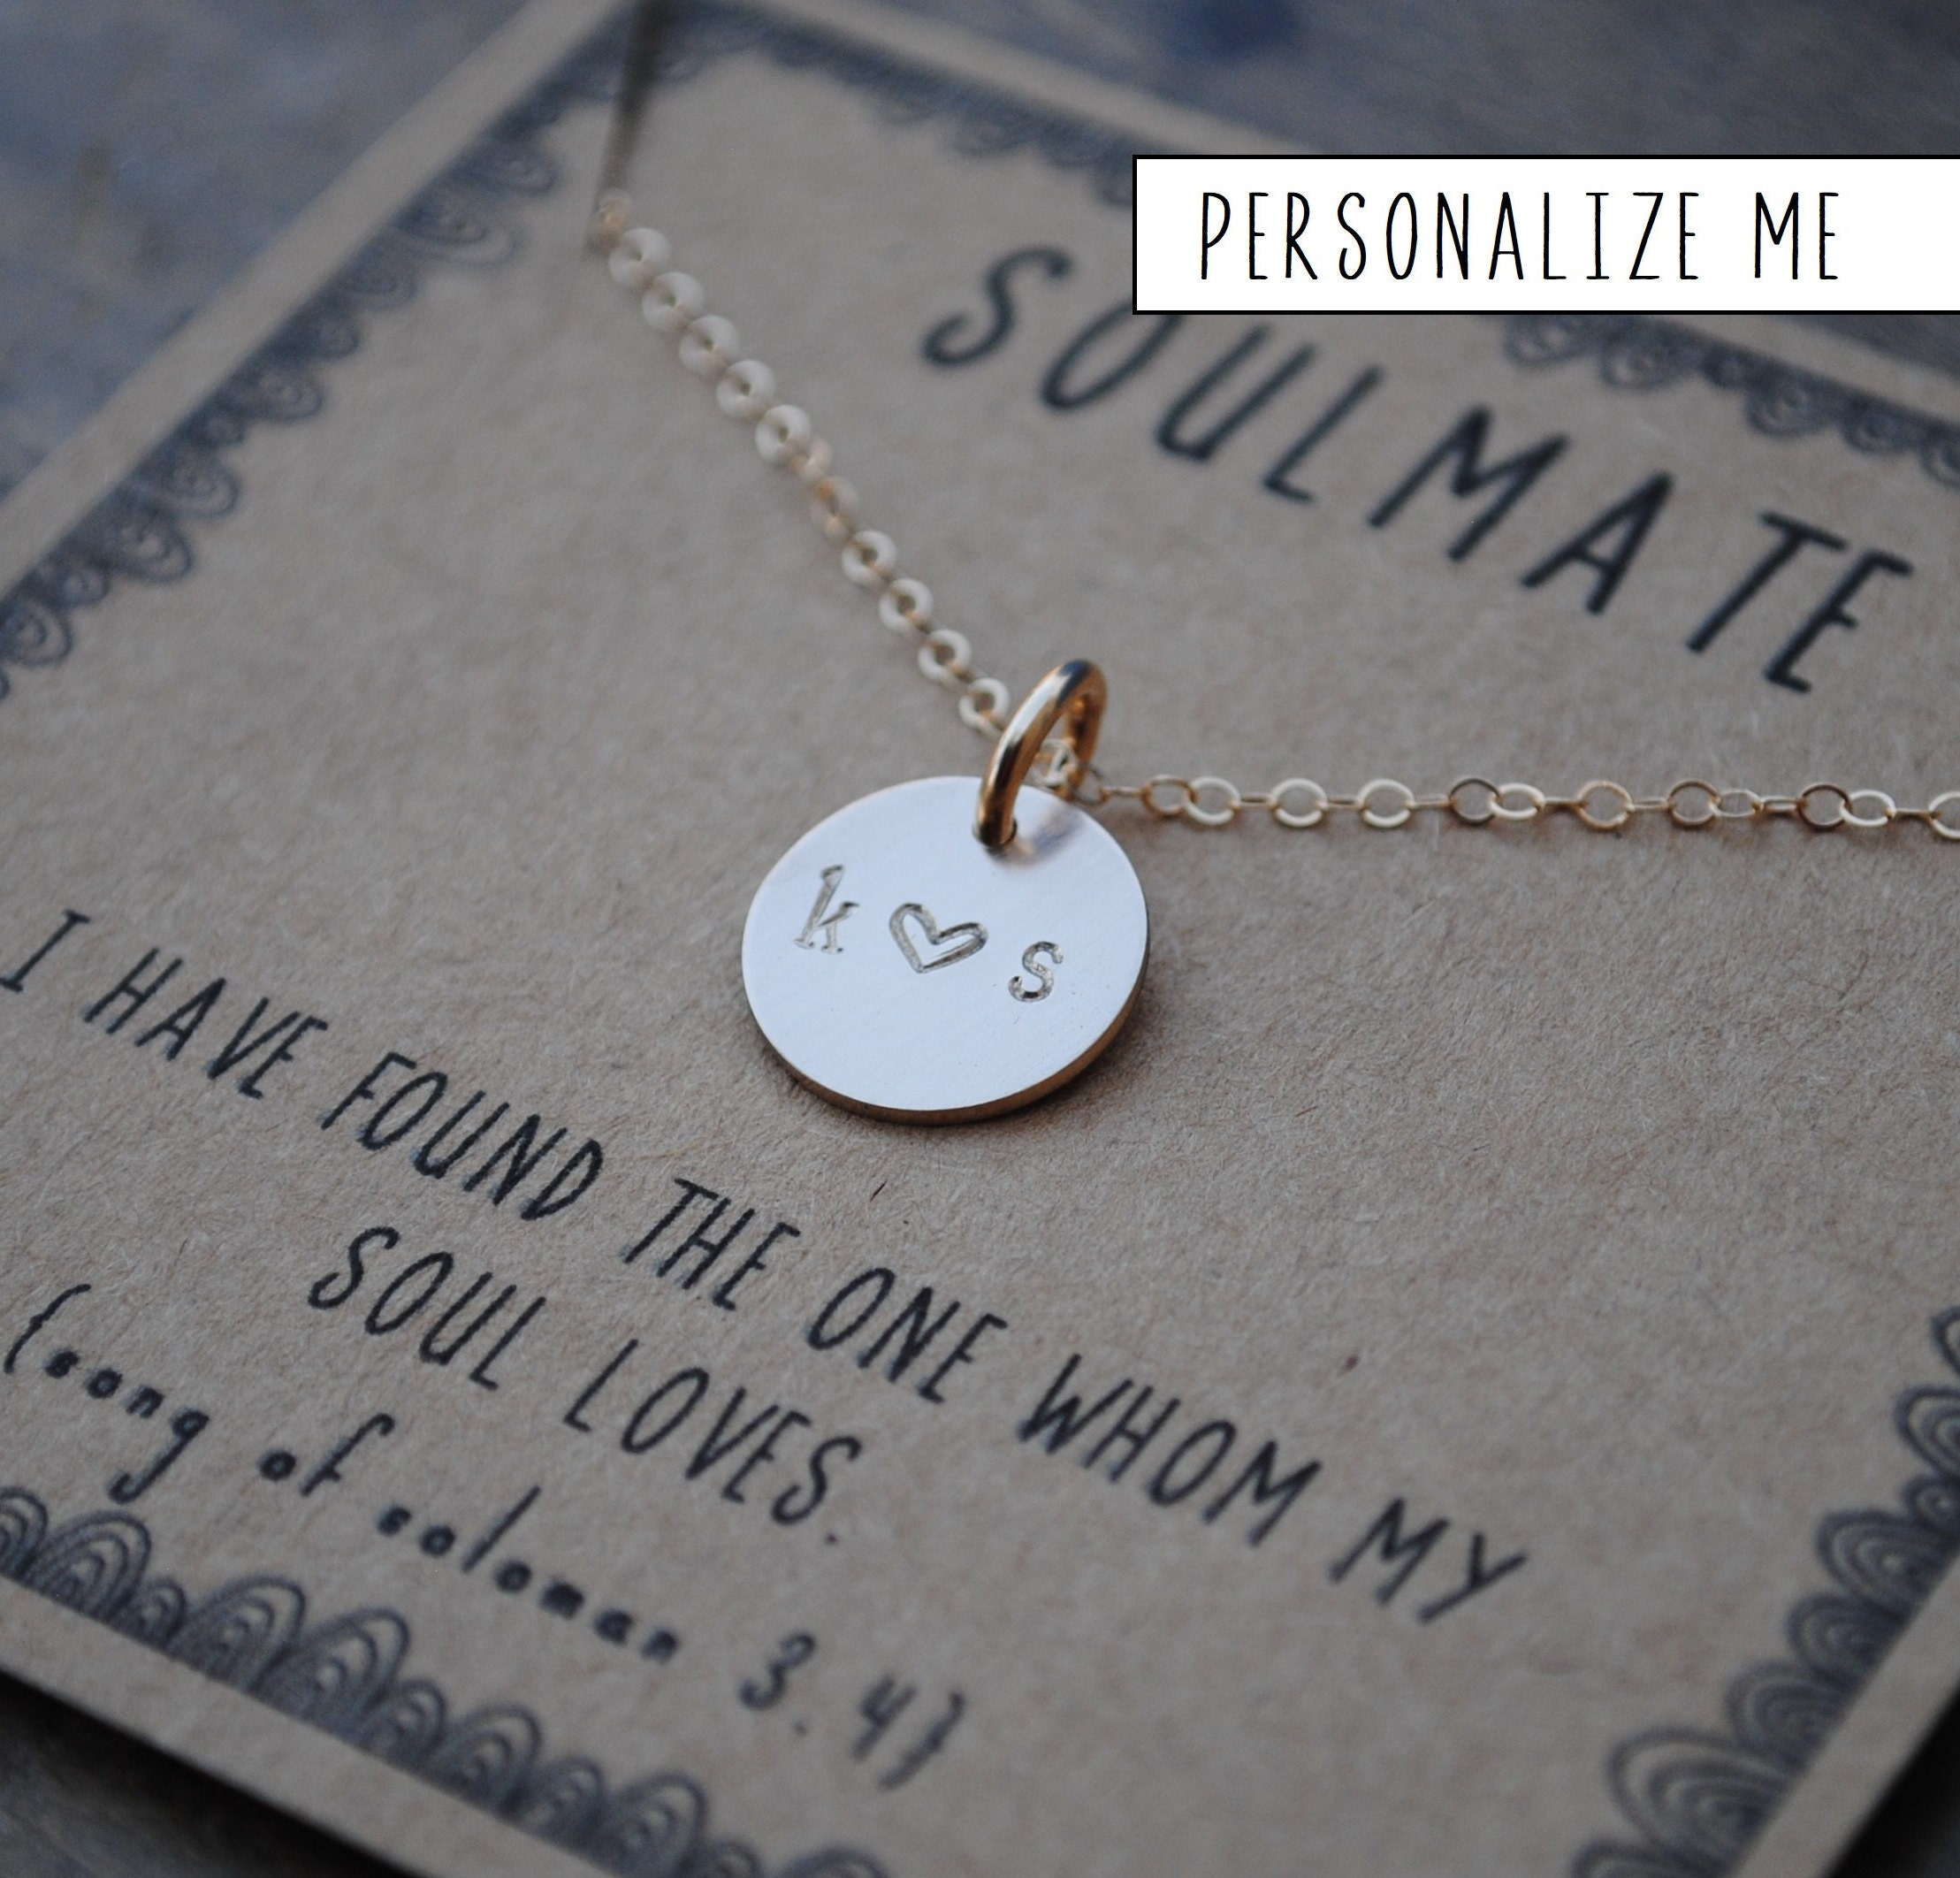 Stainless Steel Silver Gold Black Rose Gold Color Baby Name Louie Engraved Personalized Gifts For Son Daughter Boyfriend Girlfriend Initial Customizable Pendant Necklace Dog Tags 24 Ball Chain